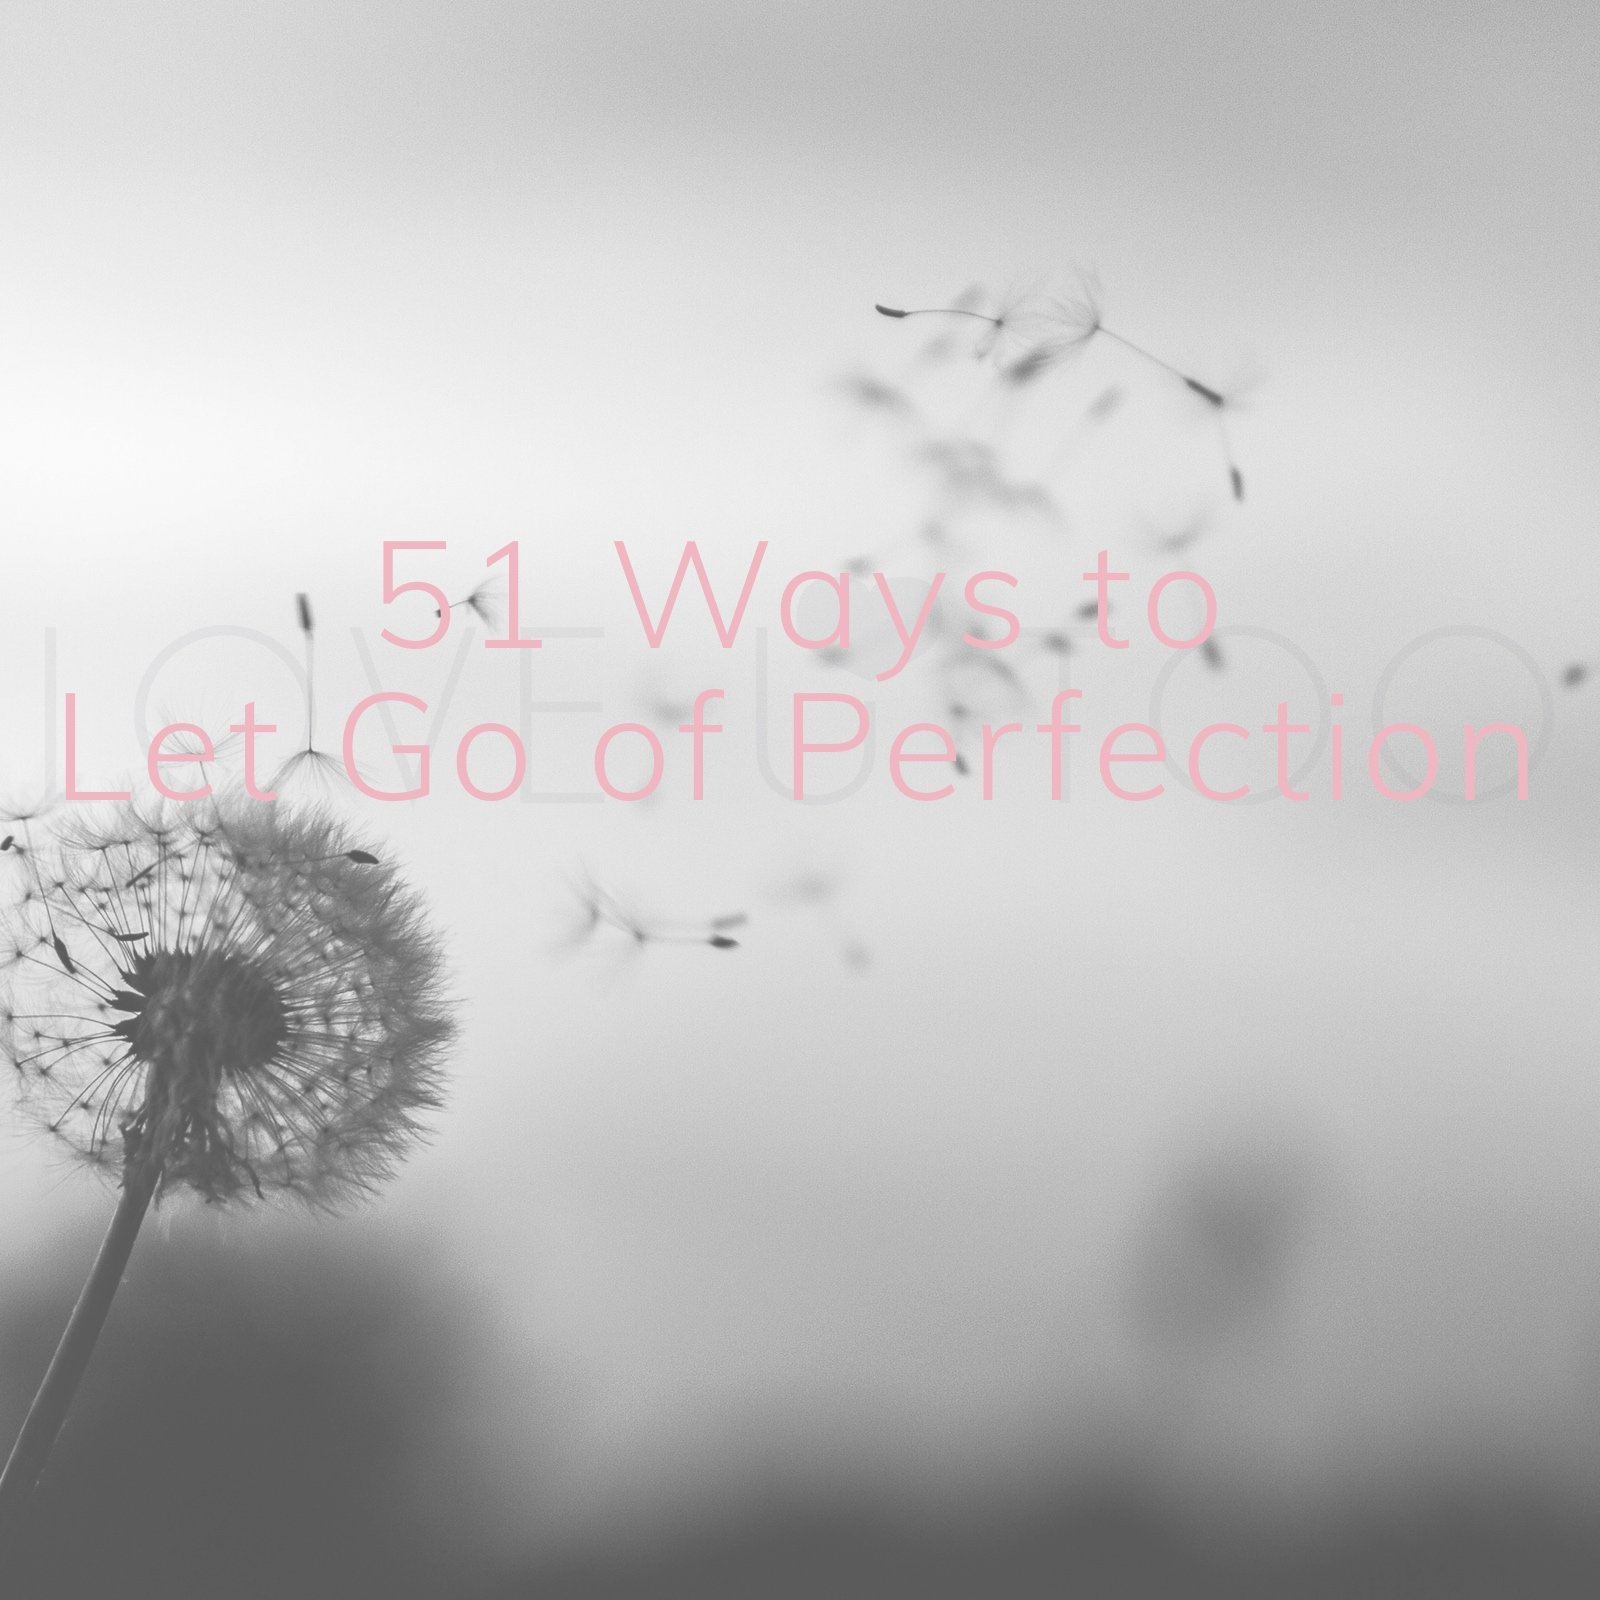 51 Ways to Let Go of Perfection